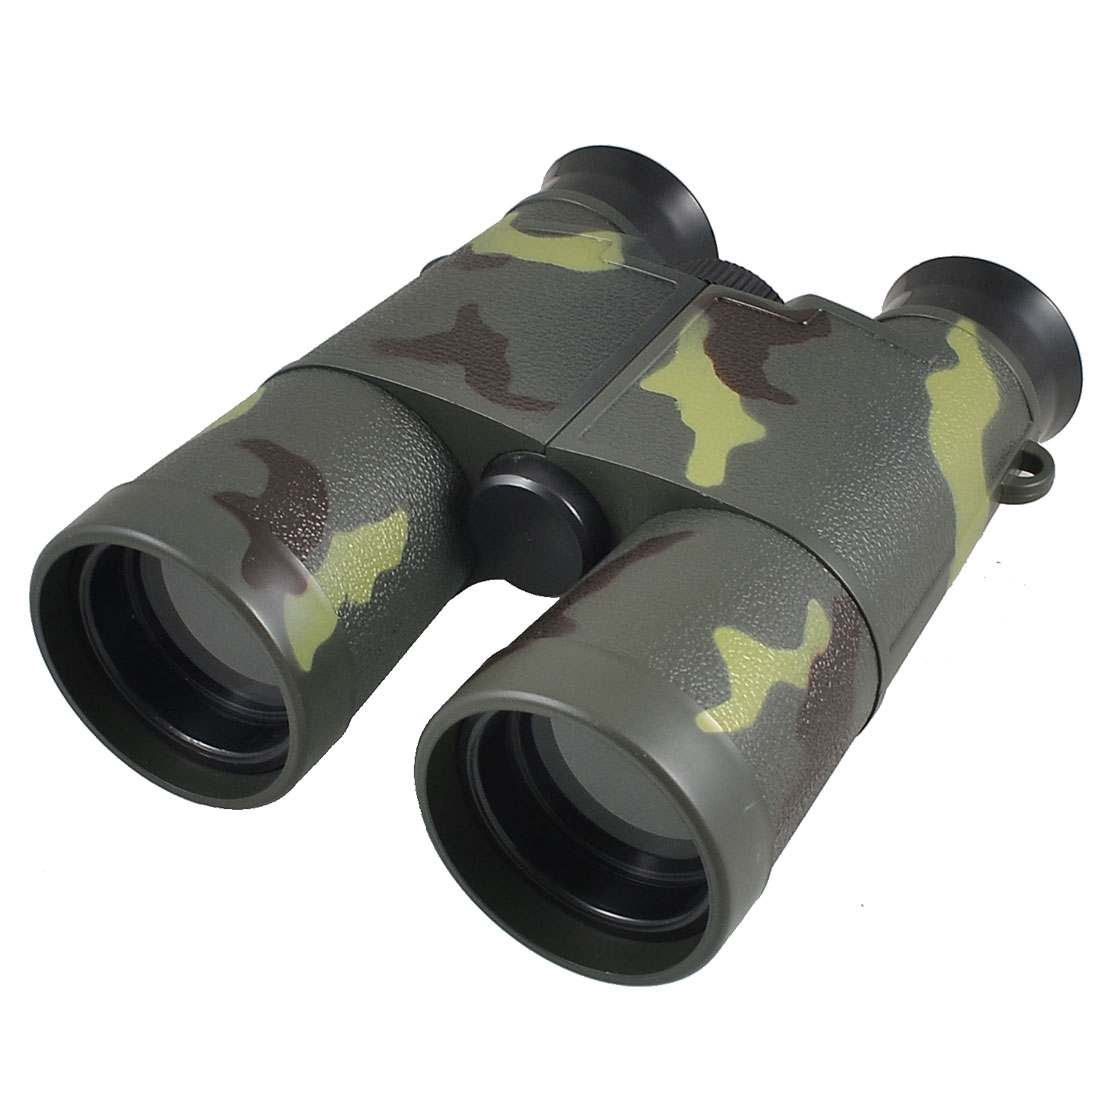 Camouflage Color Plastic 6 x 35mm Binocular Toy for Child Kids